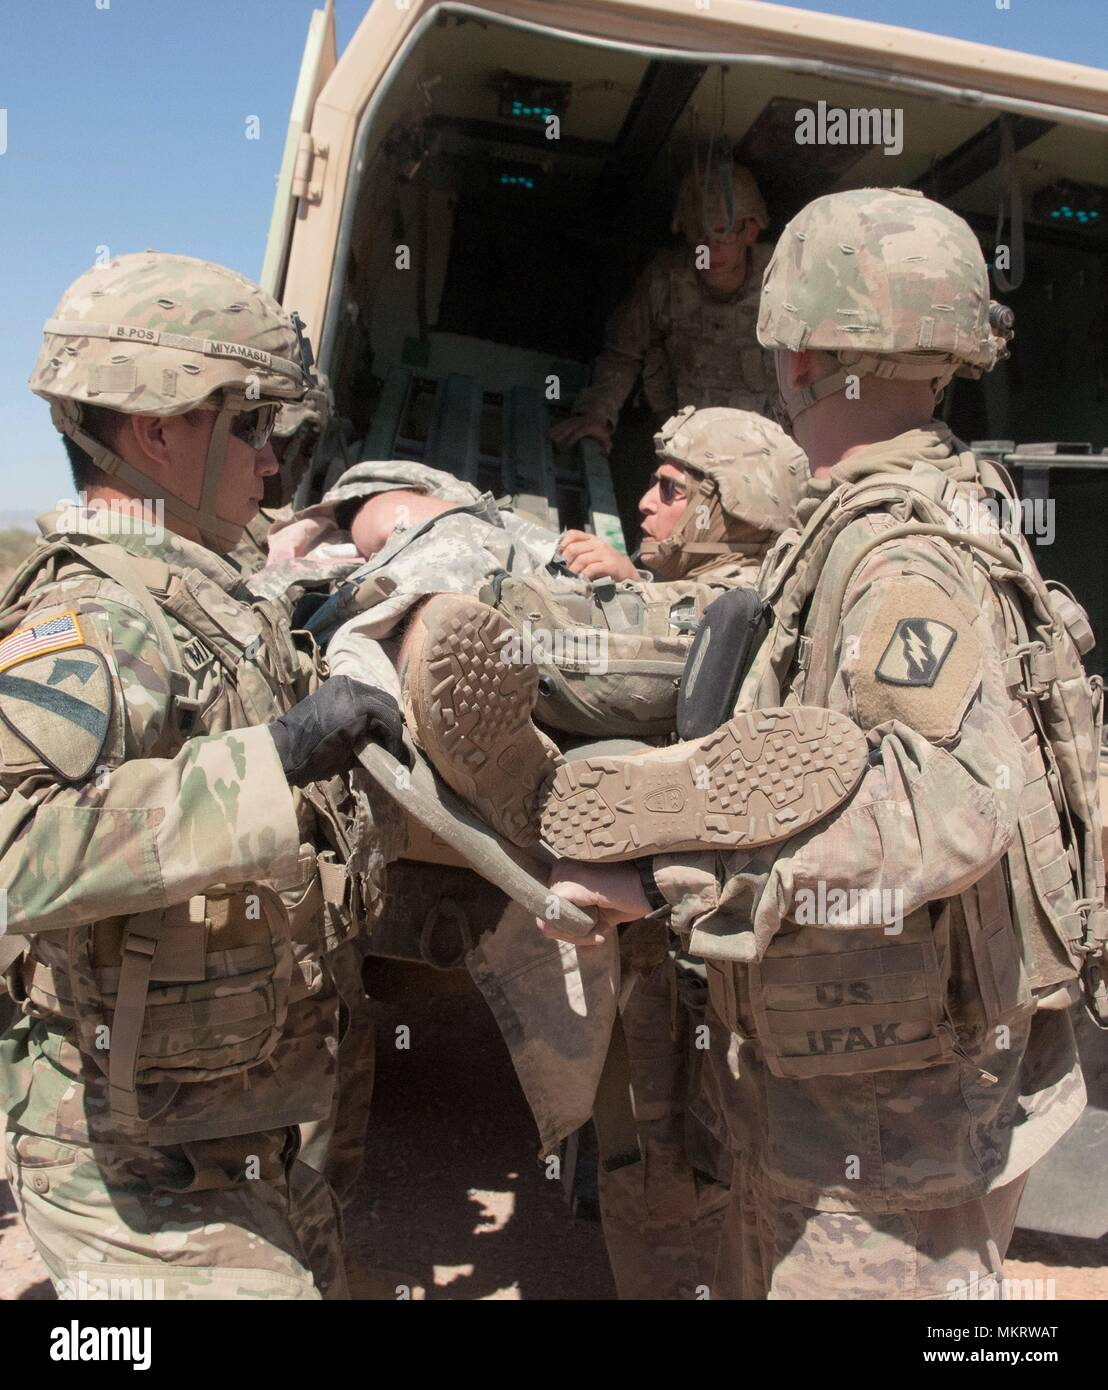 Field medics load a casualty into a Field Litter Ambulance to be transported to the Roll 2 triage center during the MASCAL exercise on McGregor Training Complex, New Mexico, May 4, May 8, 2018. The training was part of the Multi-Echelon Integrated Brigade Training that the 155th ABCT is currently undergoing to prepare for its upcoming deployment in support of Operation Spartan Shield. () - Stock Image